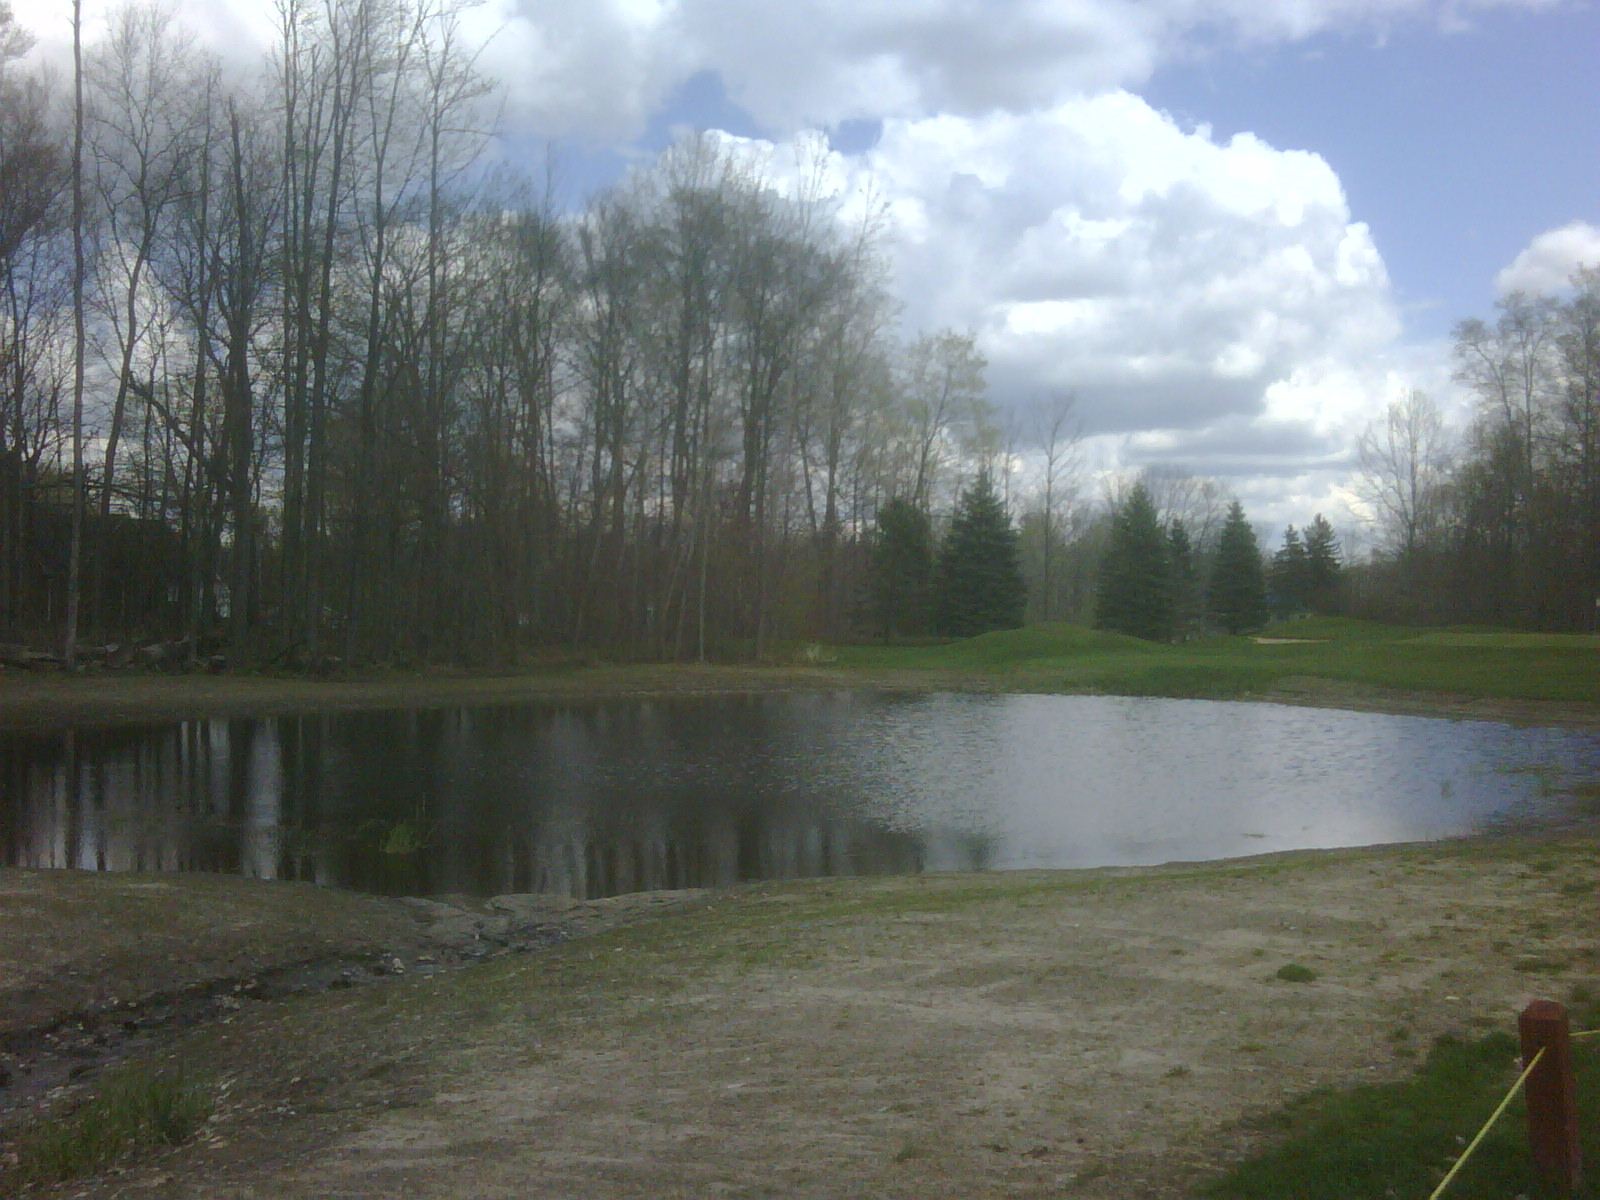 davison sugar bush golf course n (109).jpg